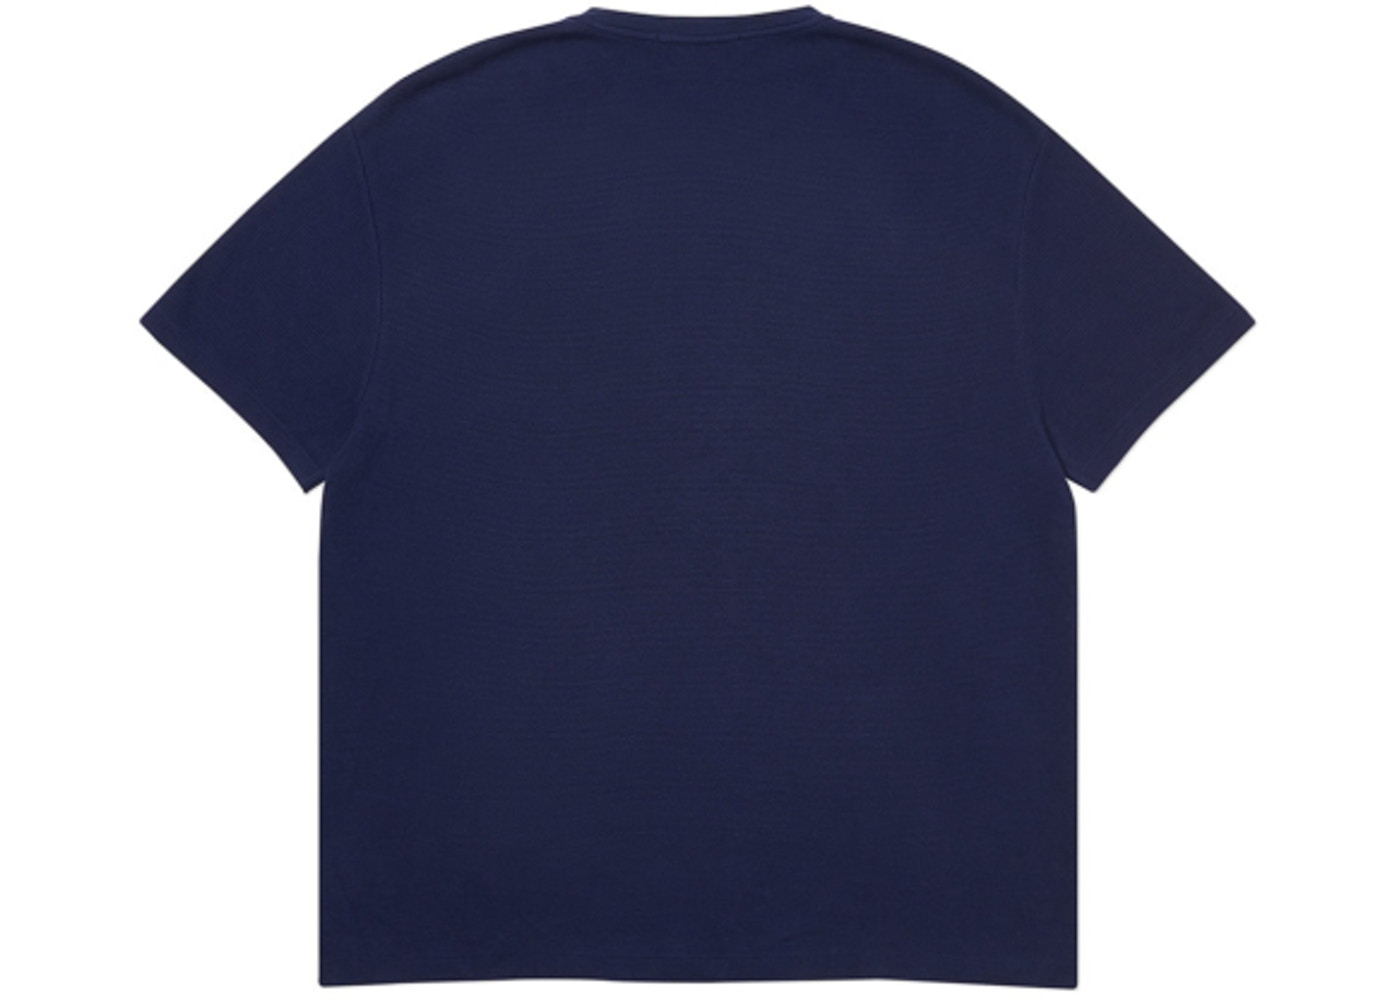 99a11b28 Palace Ralph Lauren Waffle Pocket Tee French Navy - FW18